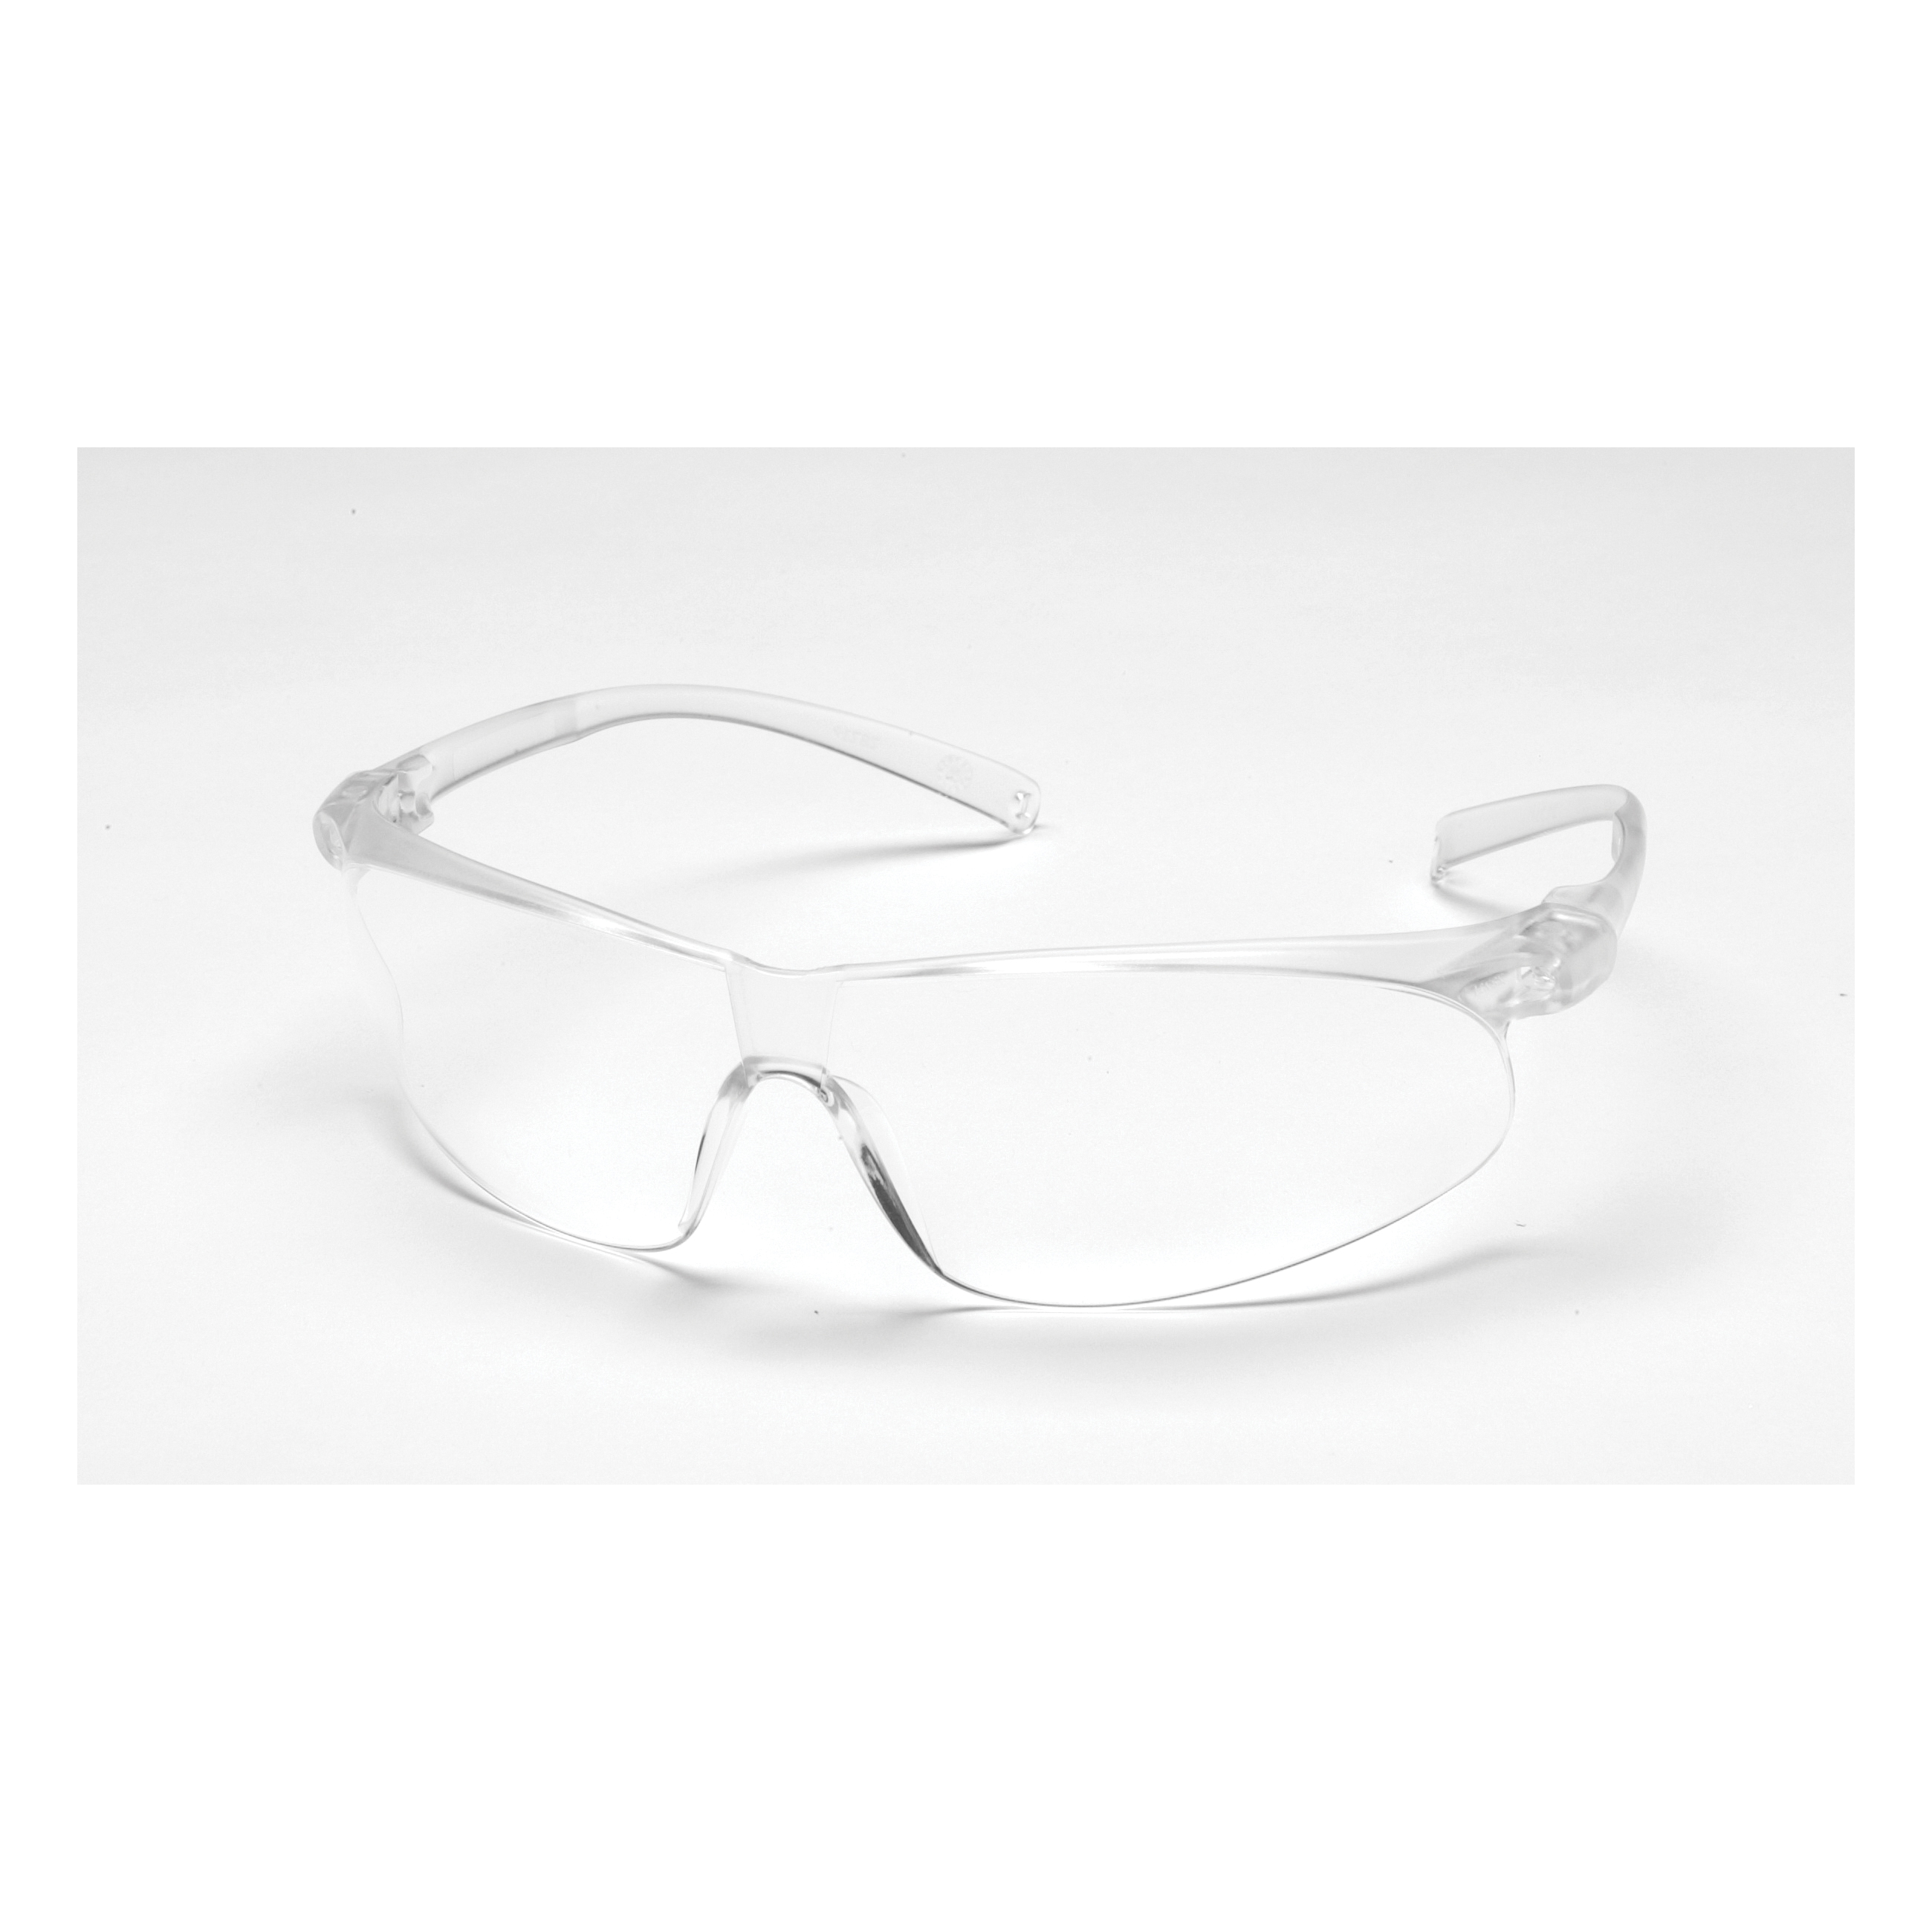 3M™ Virtua™ 078371-62054 Economy Lightweight Protective Eyewear, Anti-Fog Clear Lens, Frameless Clear Frame, Polycarbonate Lens, Specifications Met: ANSI Z87.1-2015, CSA Z94.3-2007